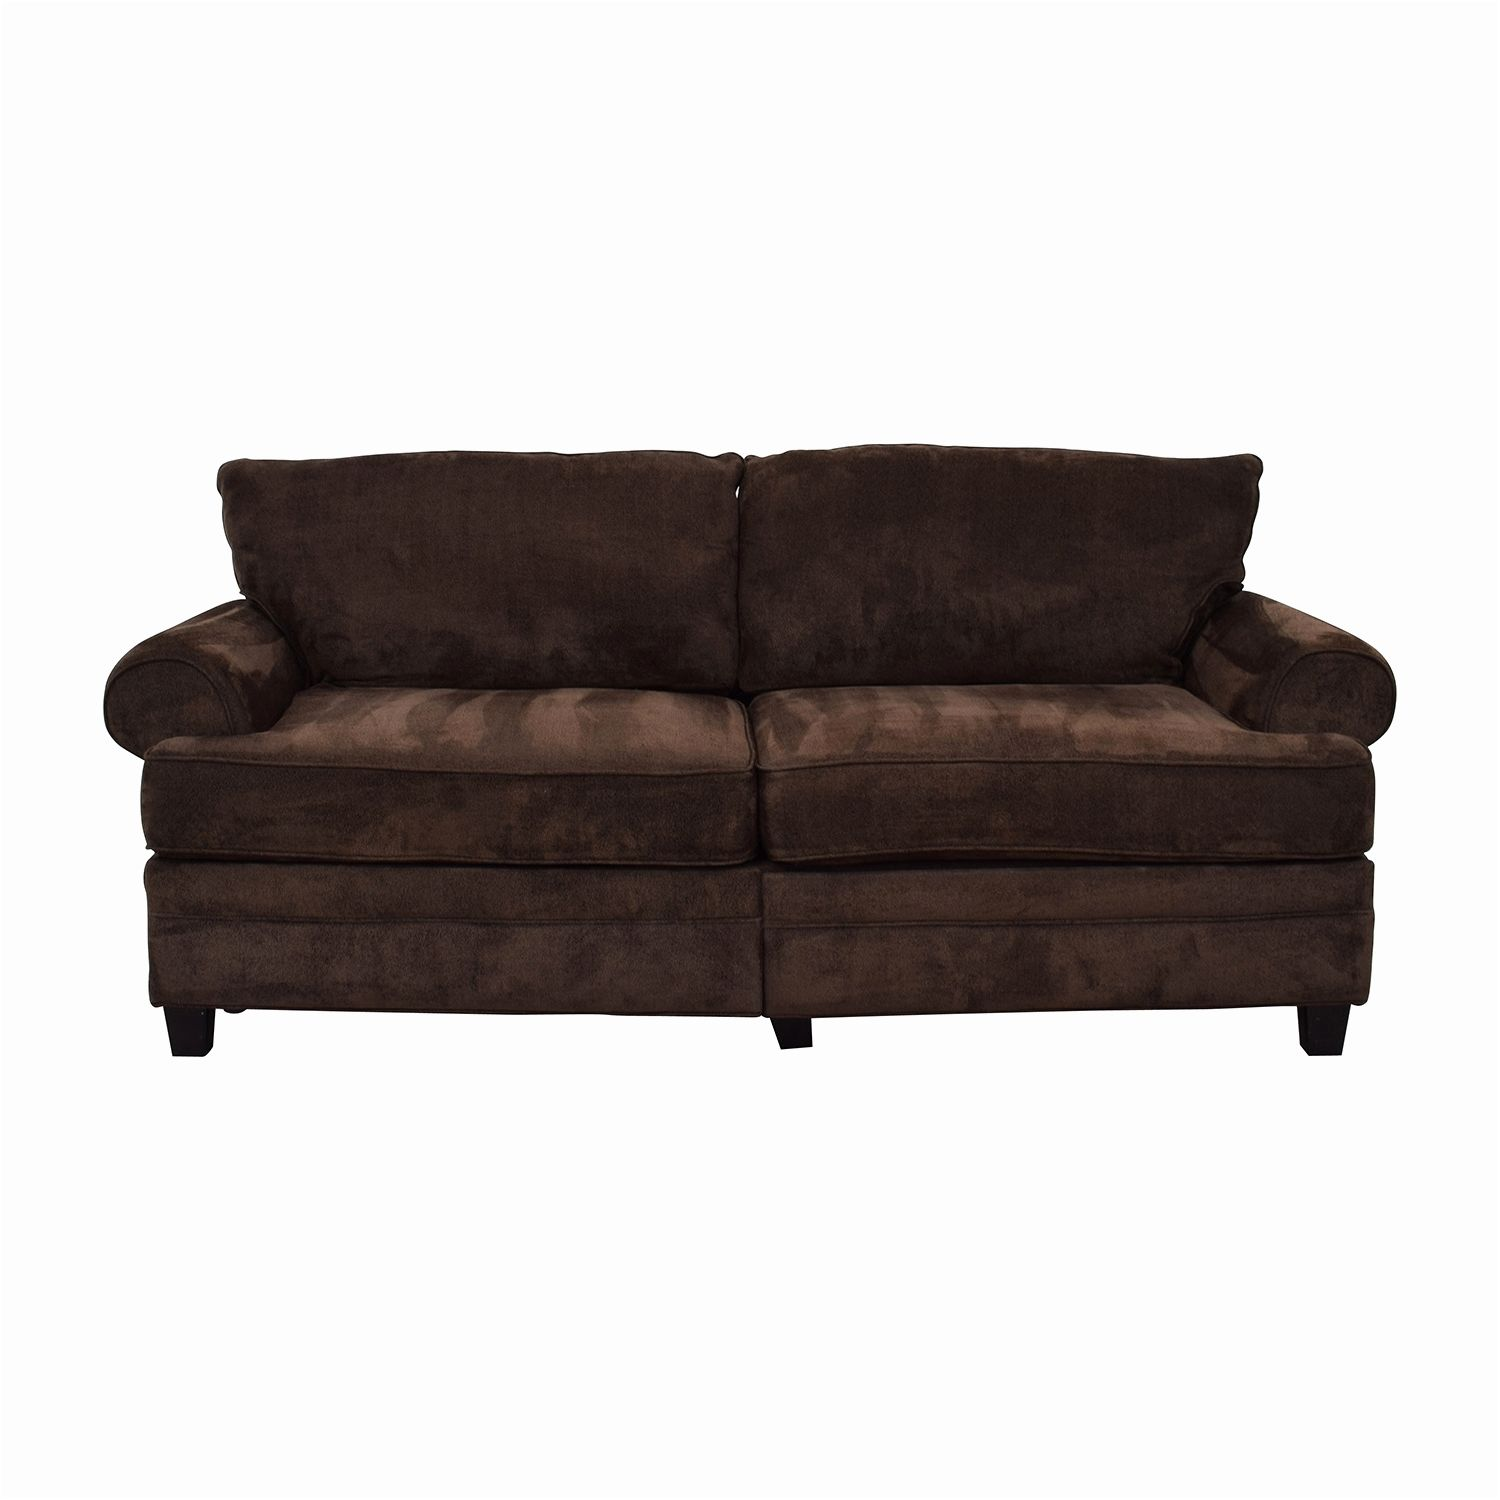 lovely walmart sofa beds design-Excellent Walmart sofa Beds Layout